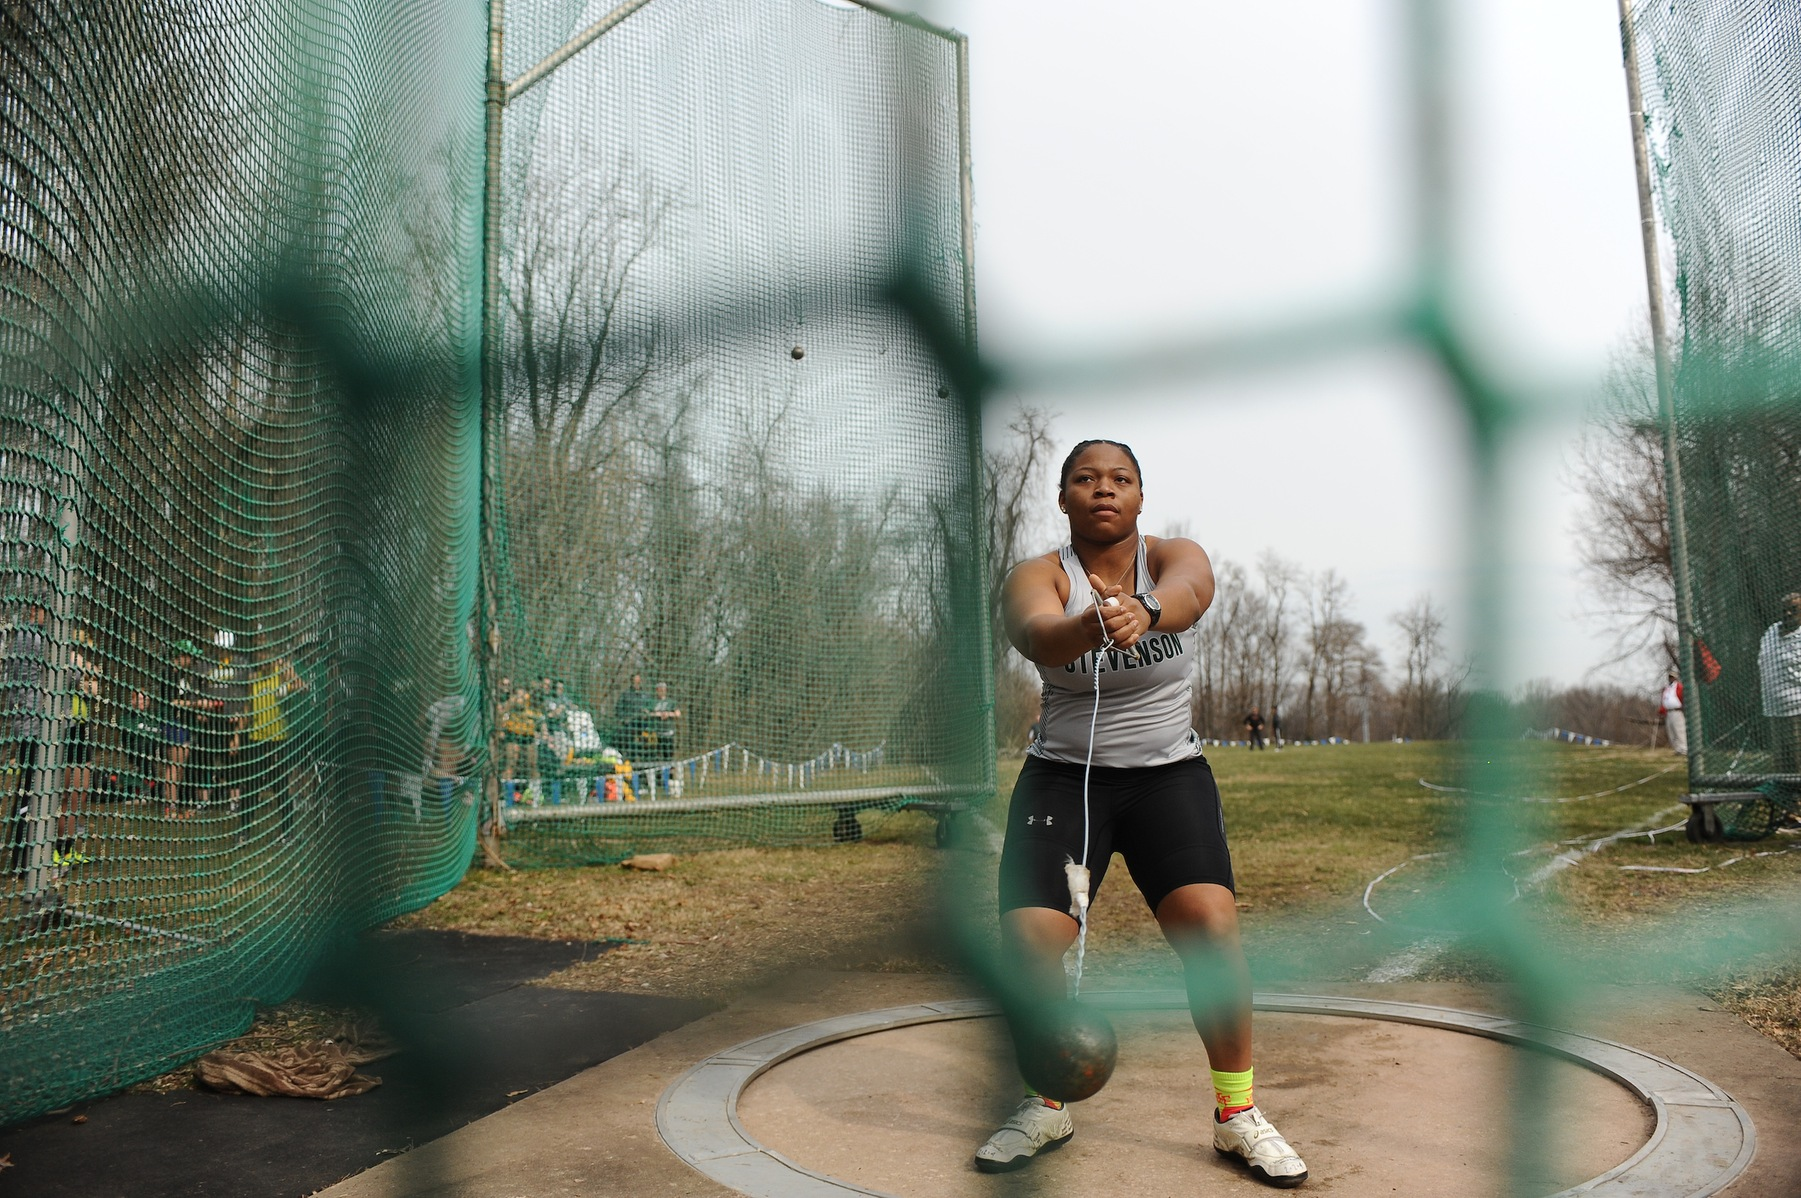 Ani Shatters School Record in Shot Put at Towson Invitational